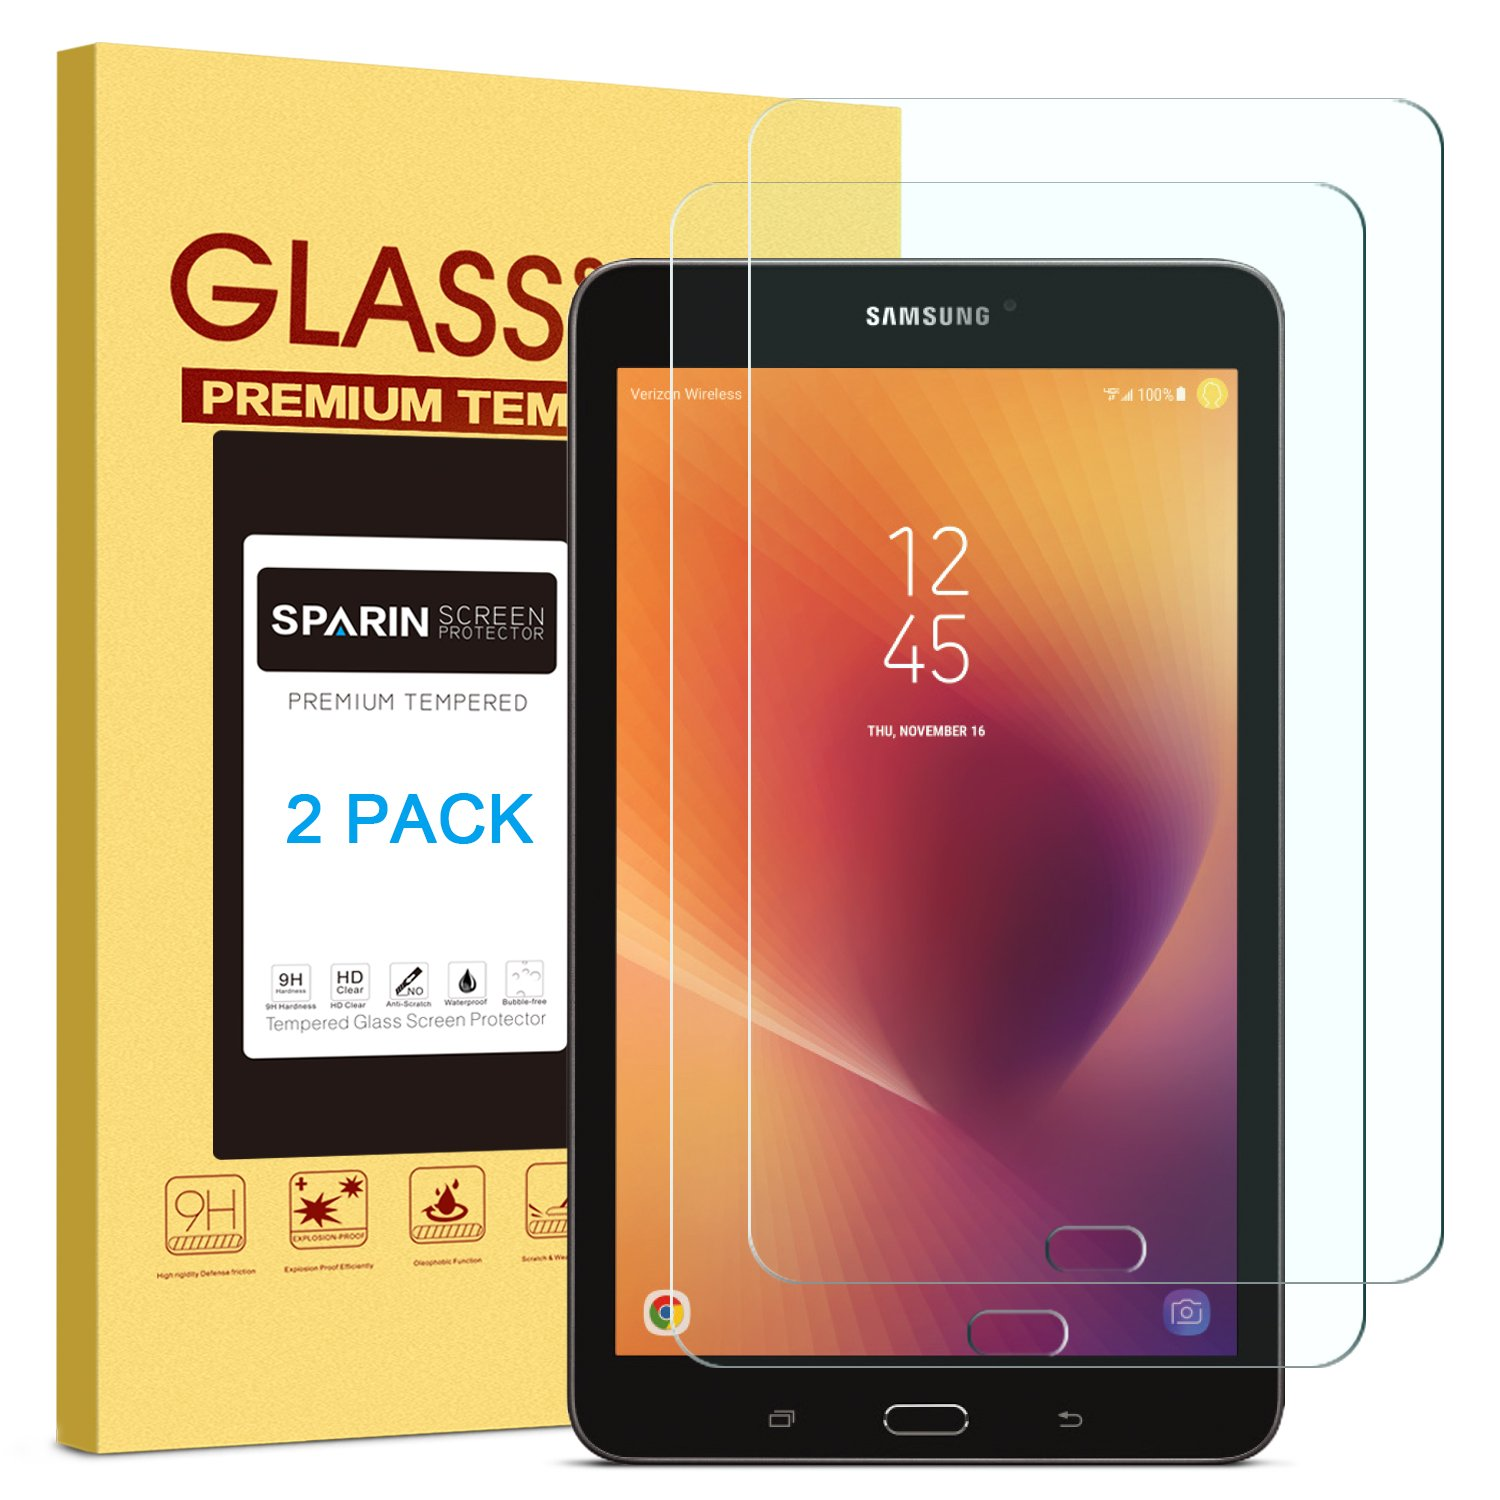 [2 PACK] Galaxy Tab E 8.0 Screen Protector, SPARIN [Tempered Glass] [Bubble-Free] Screen Protector for Samsung Galaxy Tab E 8.0 Inch Tablet (2017/2016 Version)